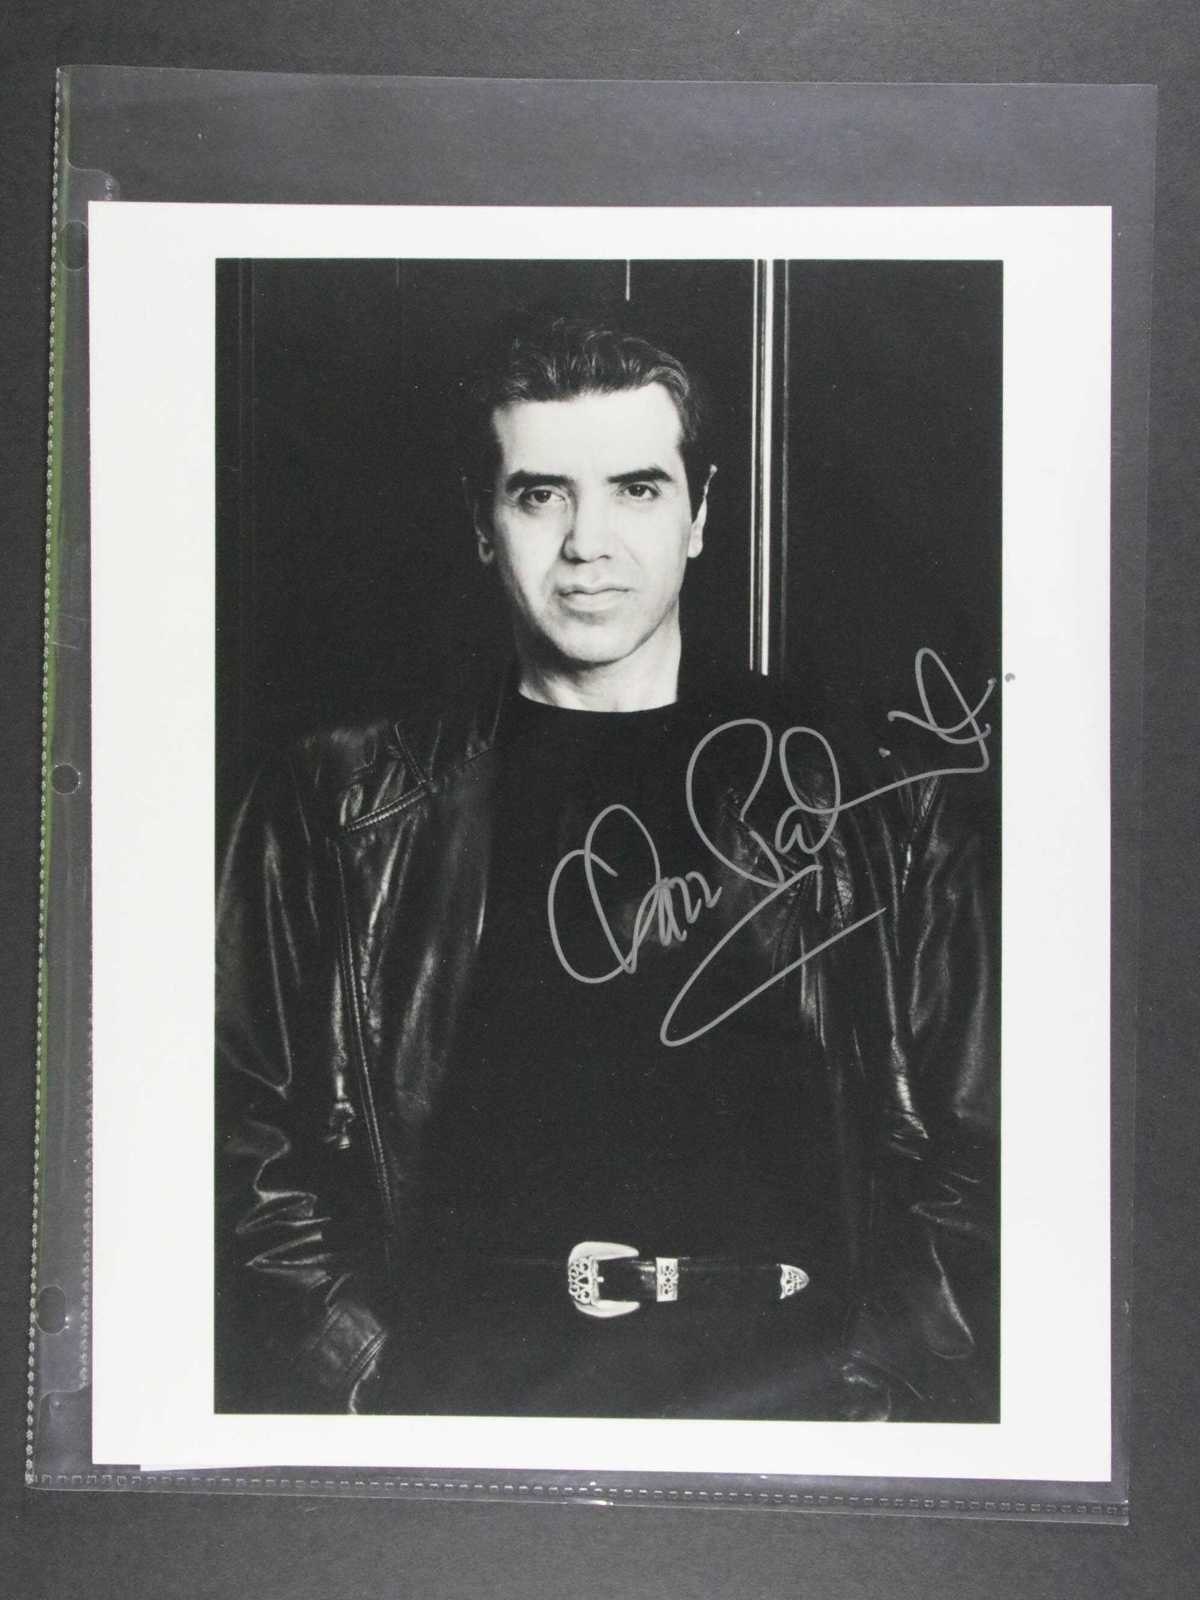 Primary image for Chazz Palminteri Signed Autographed Glossy 8x10 Photo